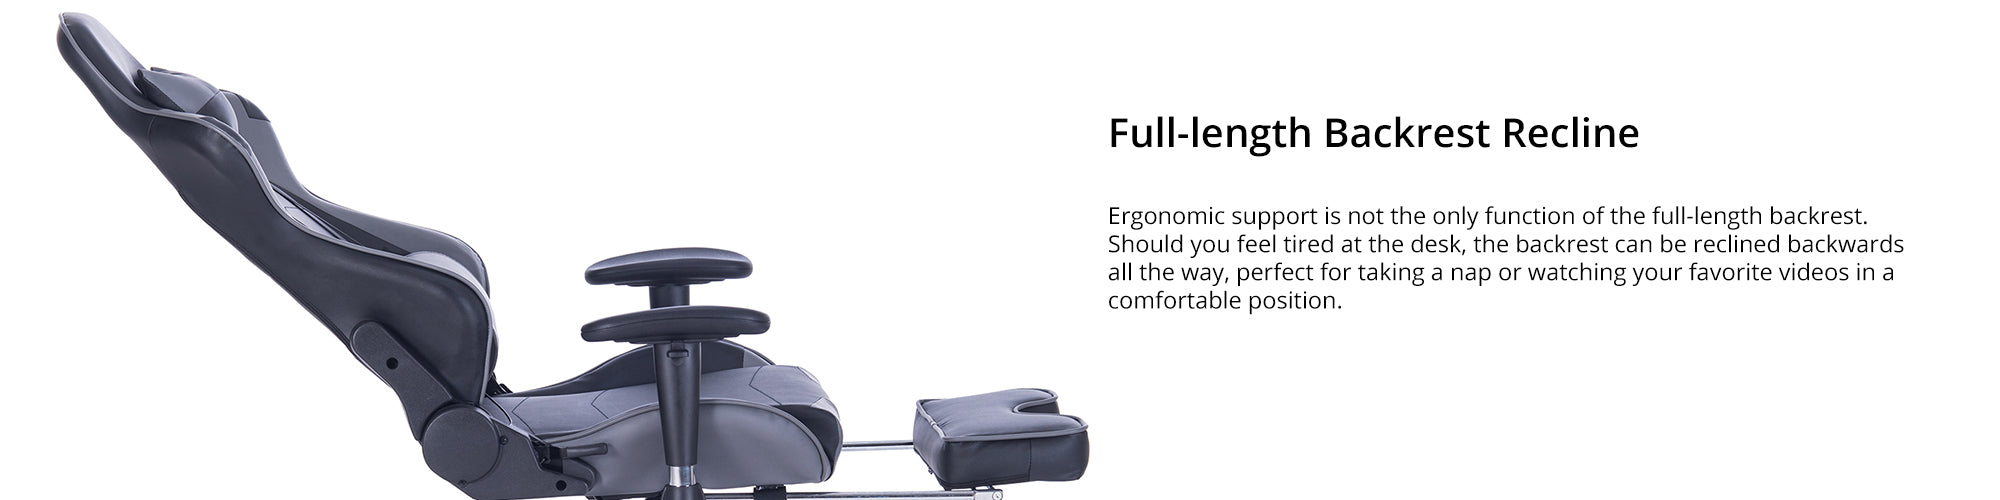 Features (full-length backrest recline)